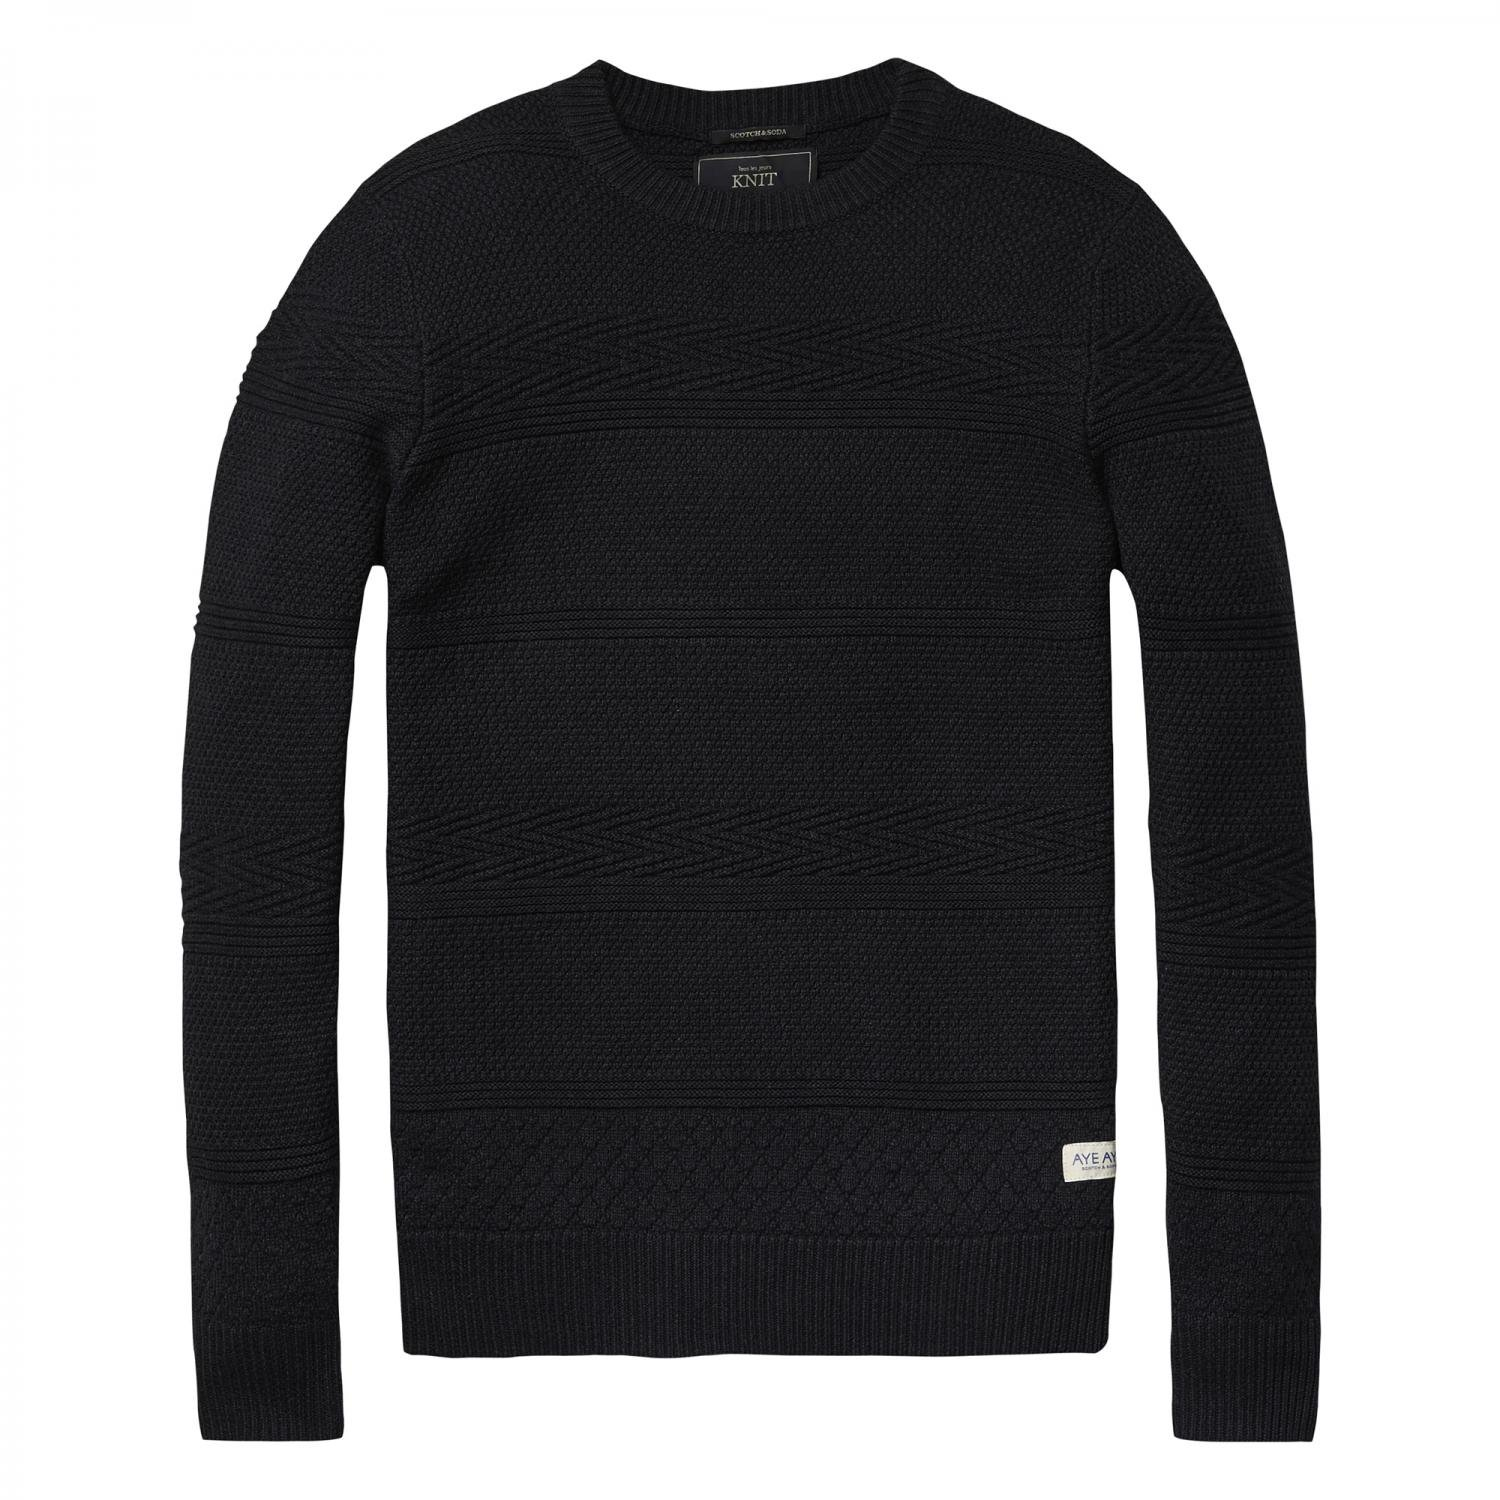 Scotch & Soda Herren Pullover Crewneck in Structure Knit 101665